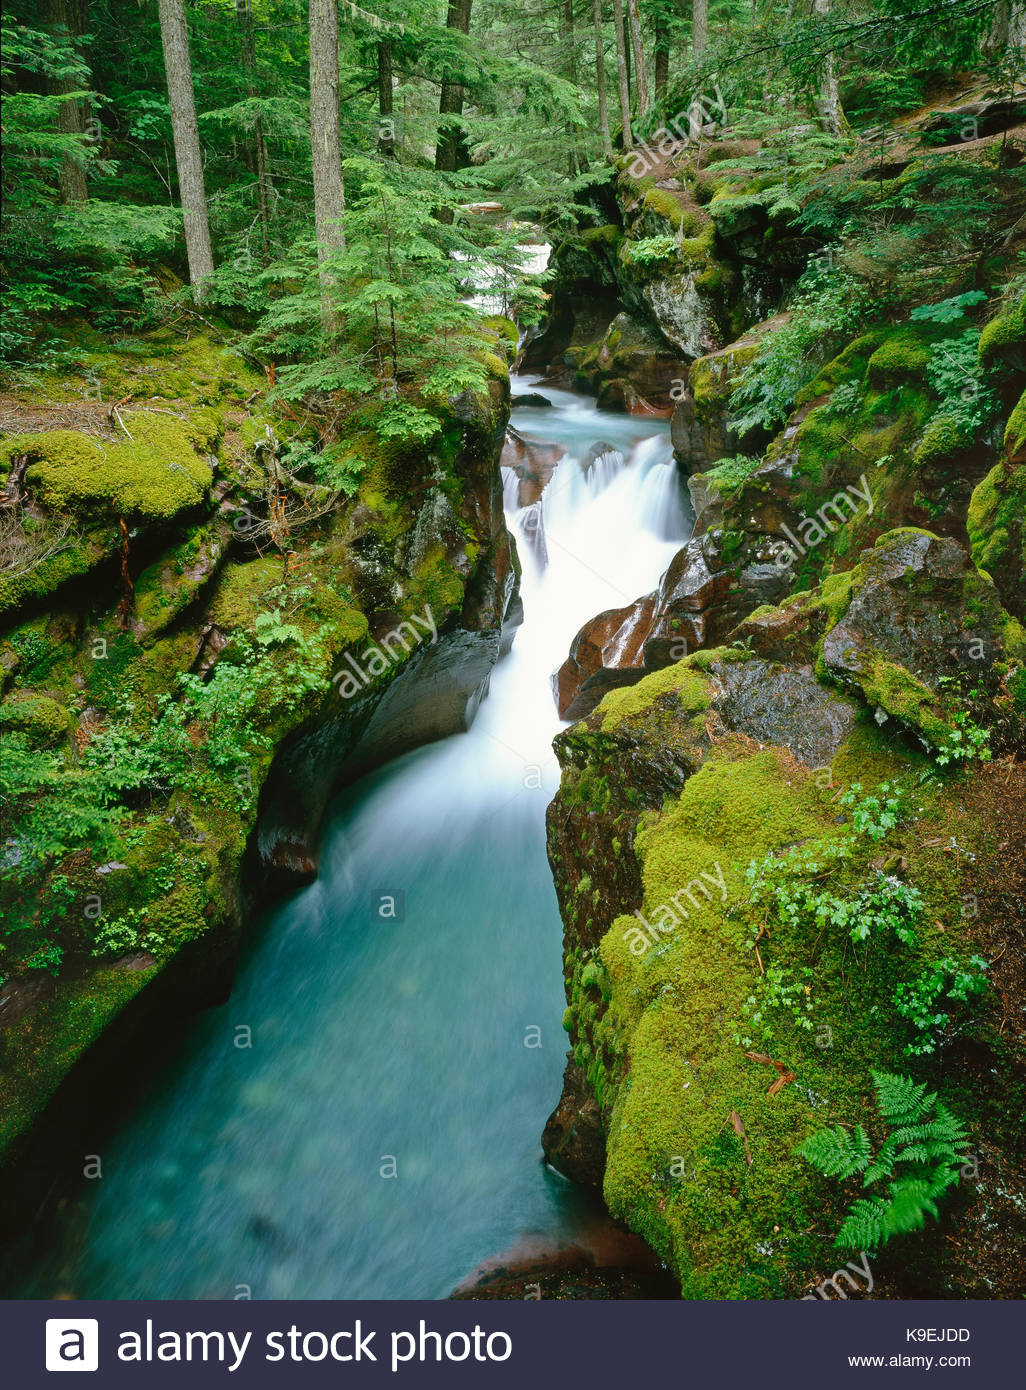 Avalanche Creek after Rain, Glacier National Park, Montana - Stock Image